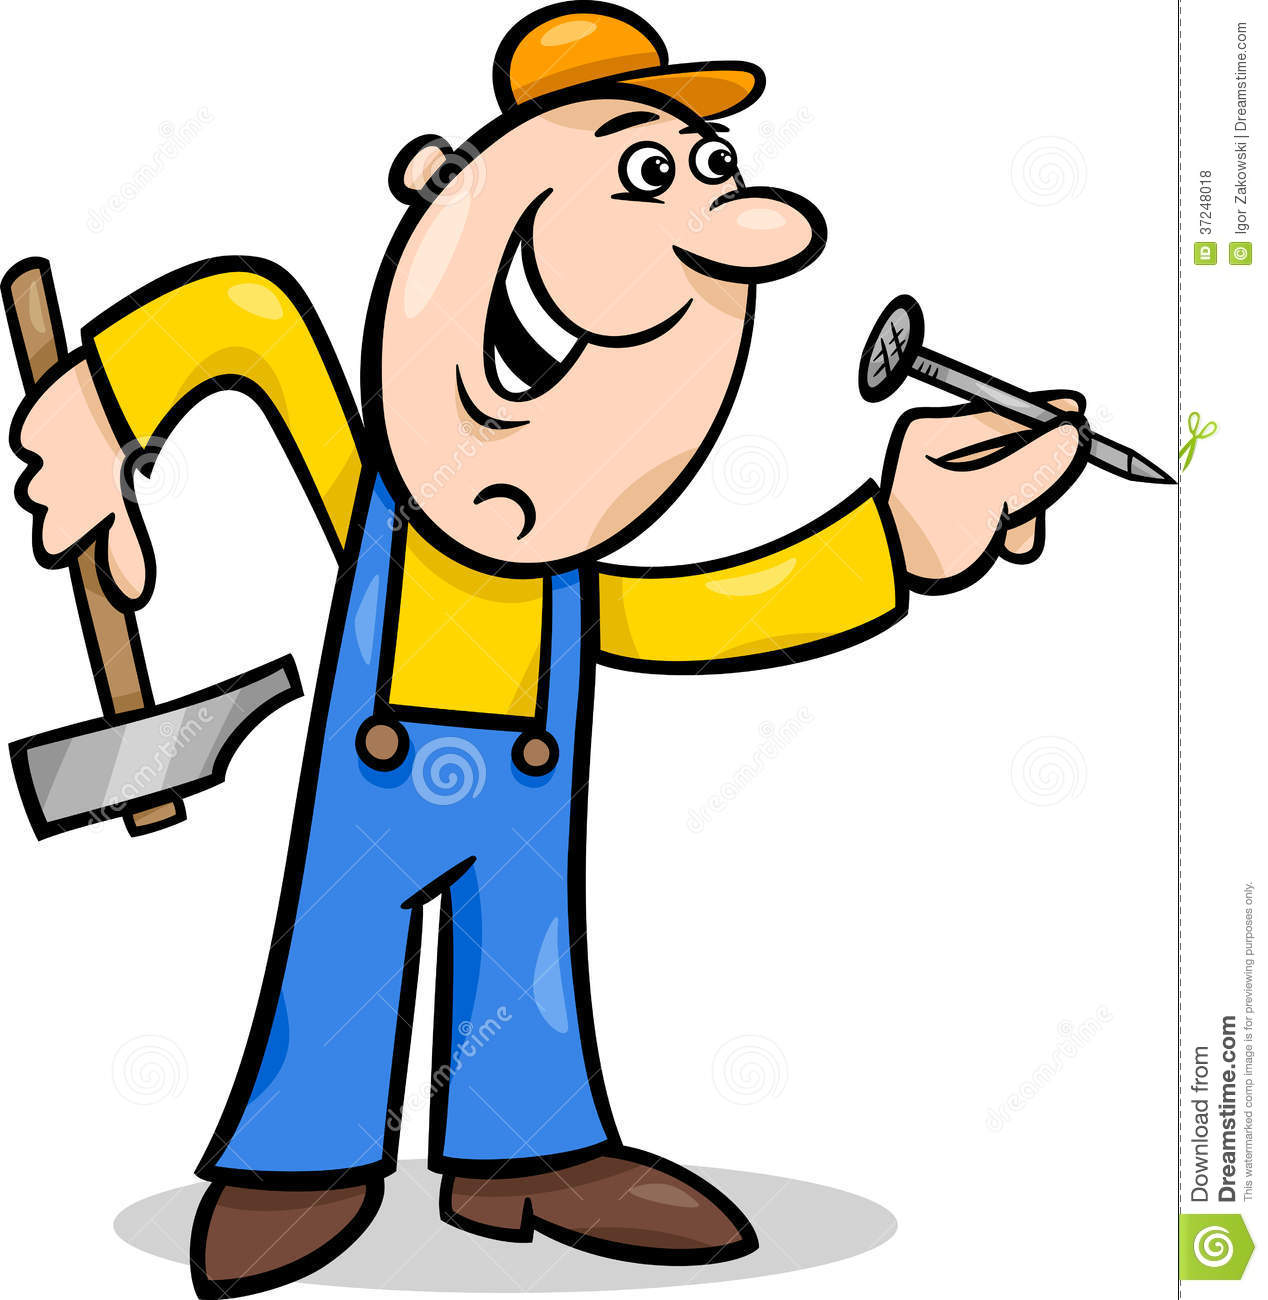 Cartoon: Worker With Nail Cartoon Illustration Royalty Free Stock